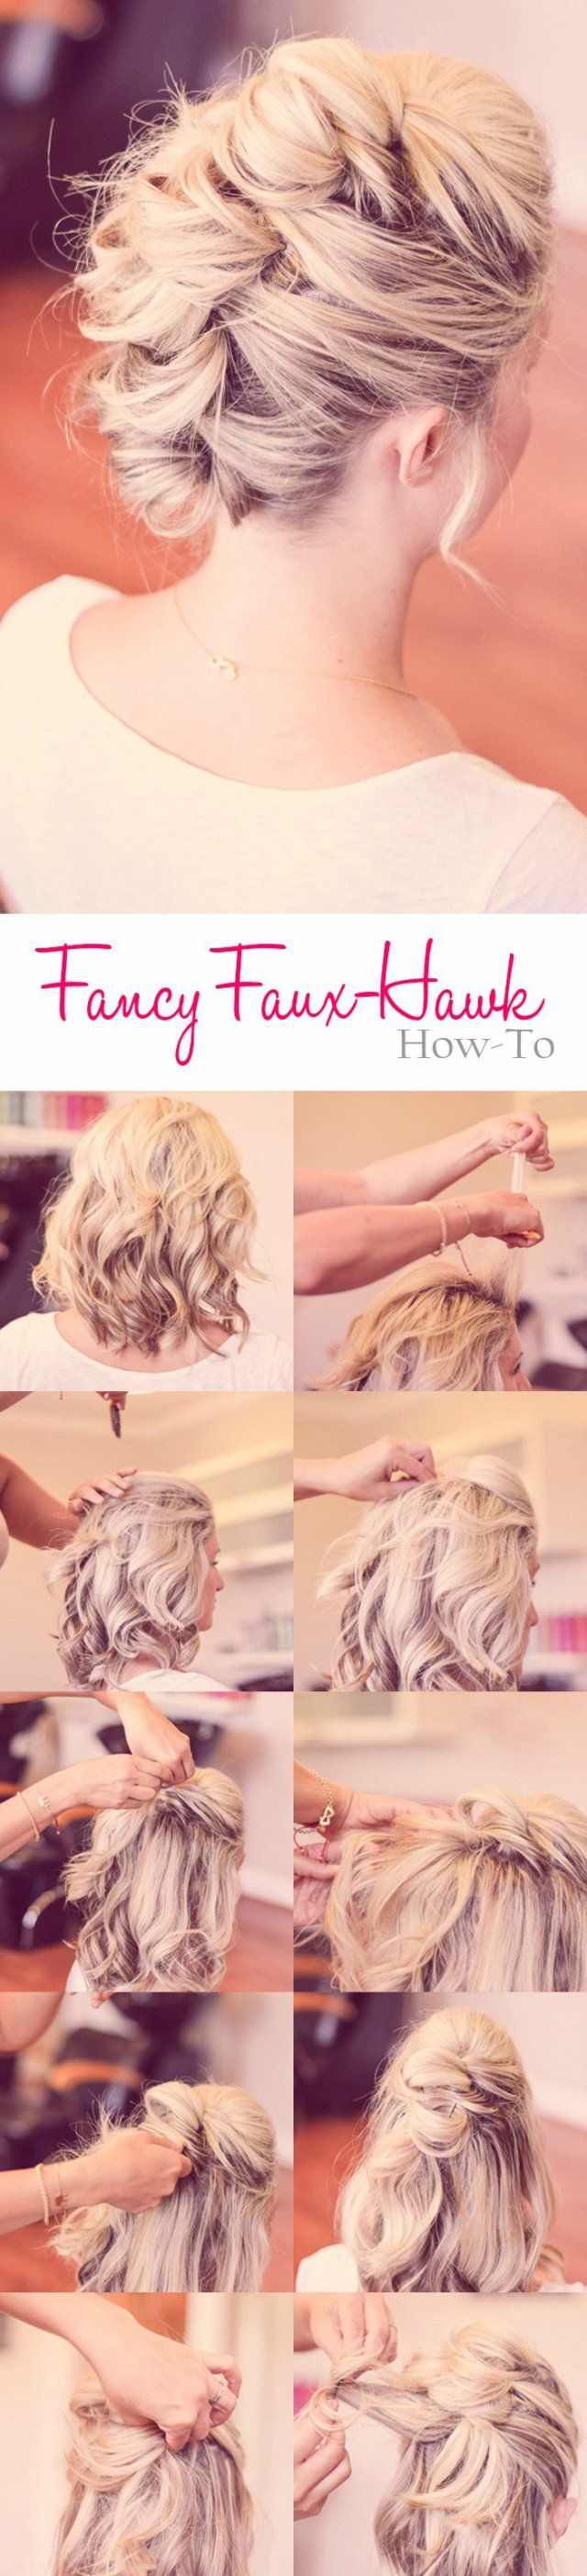 188 best Beauty images on Pinterest | Hair ideas, Hairstyle ideas ...